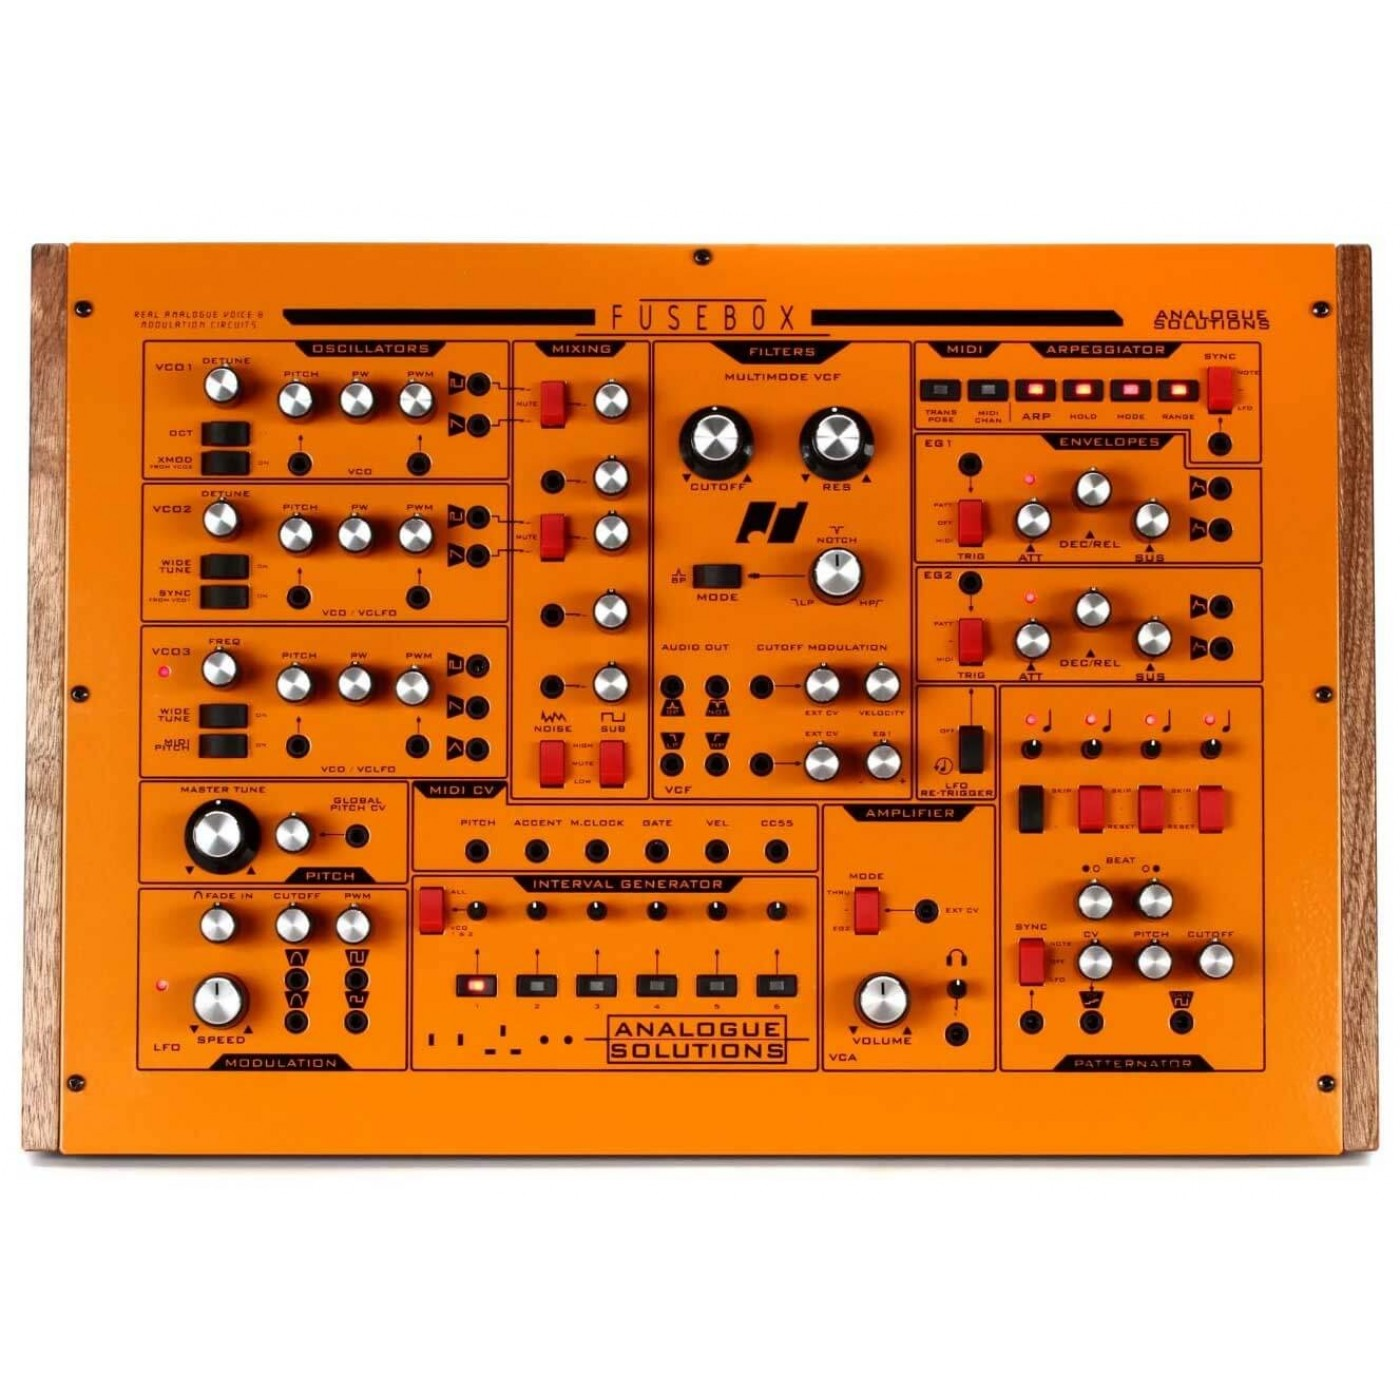 Front Analogue Solutions FUSEBOX   Rage Audio